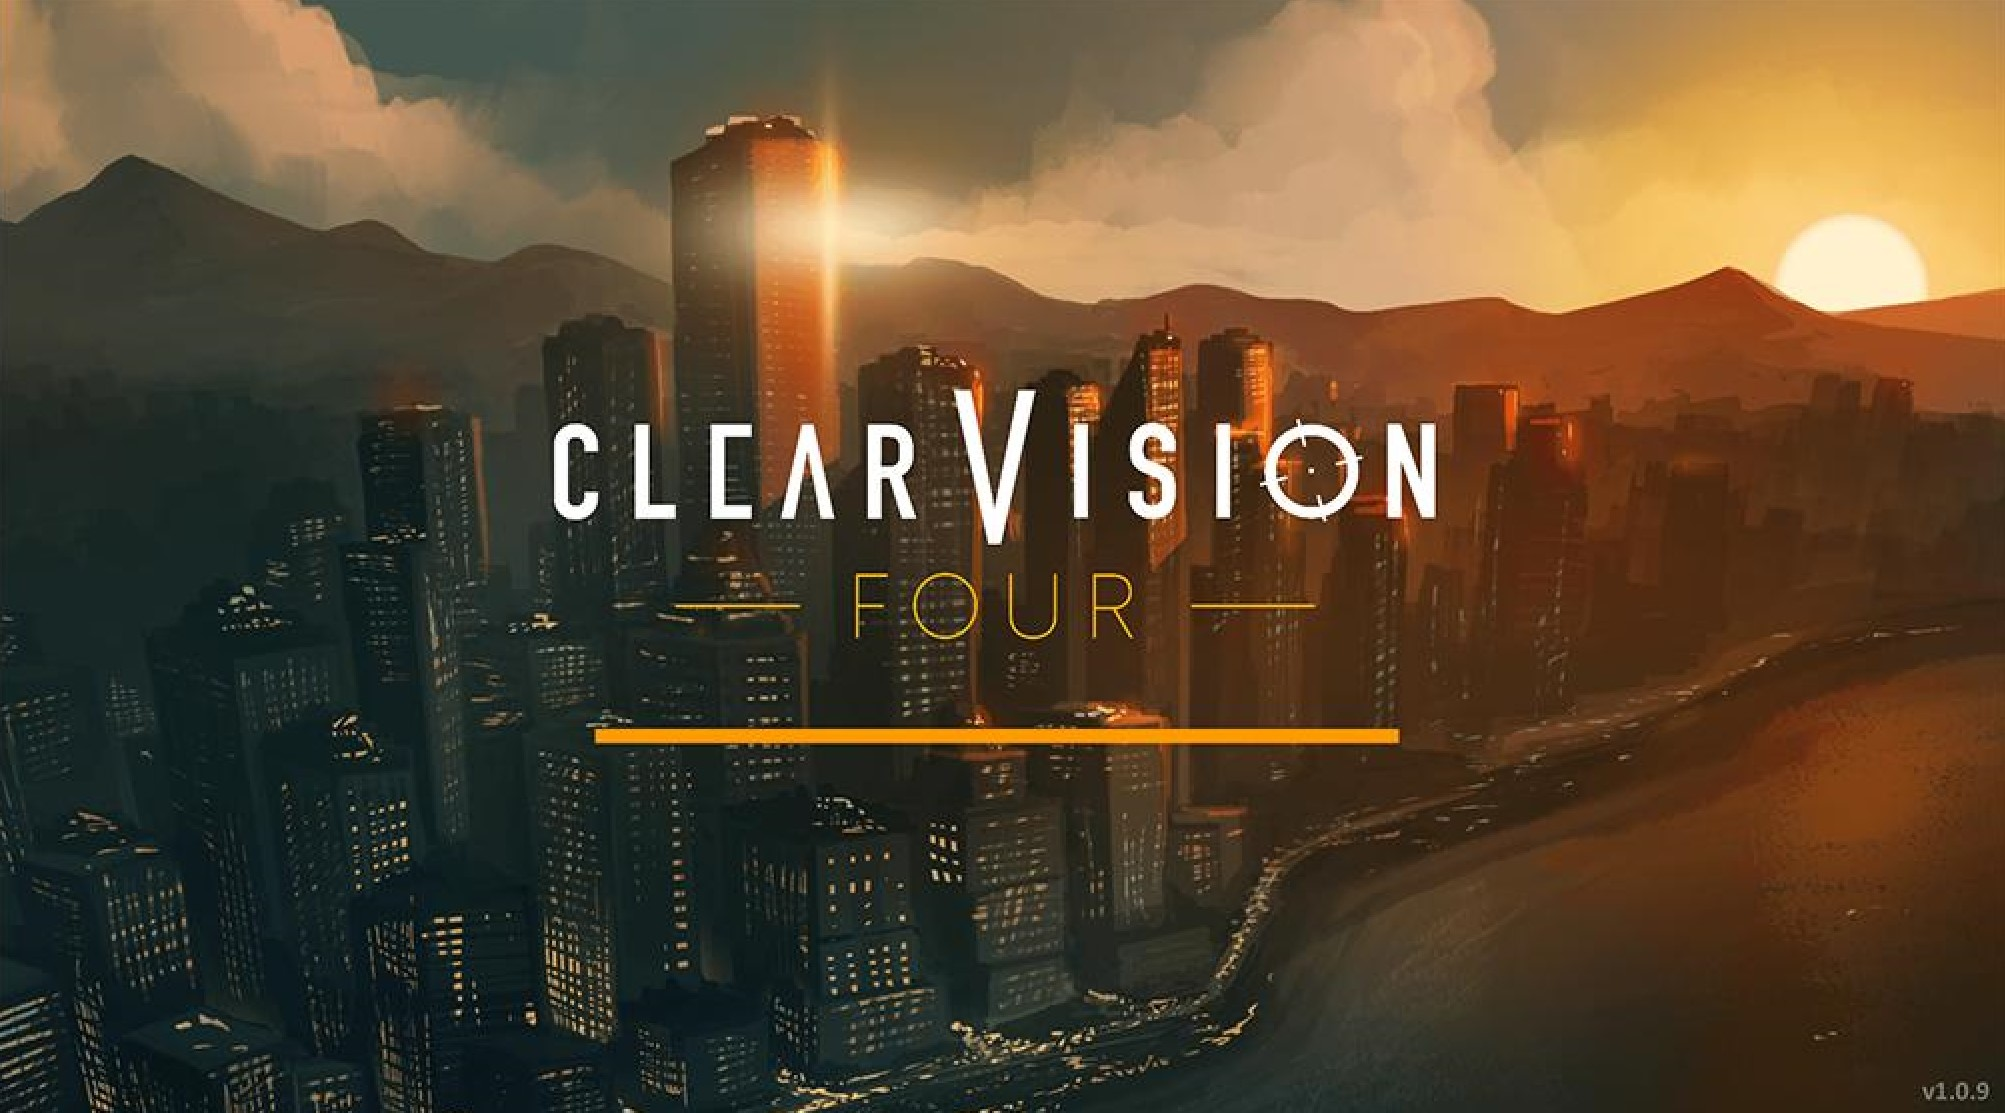 Clear Vision 4 cheats and tips - How to upgrade weapons and clear stages fast